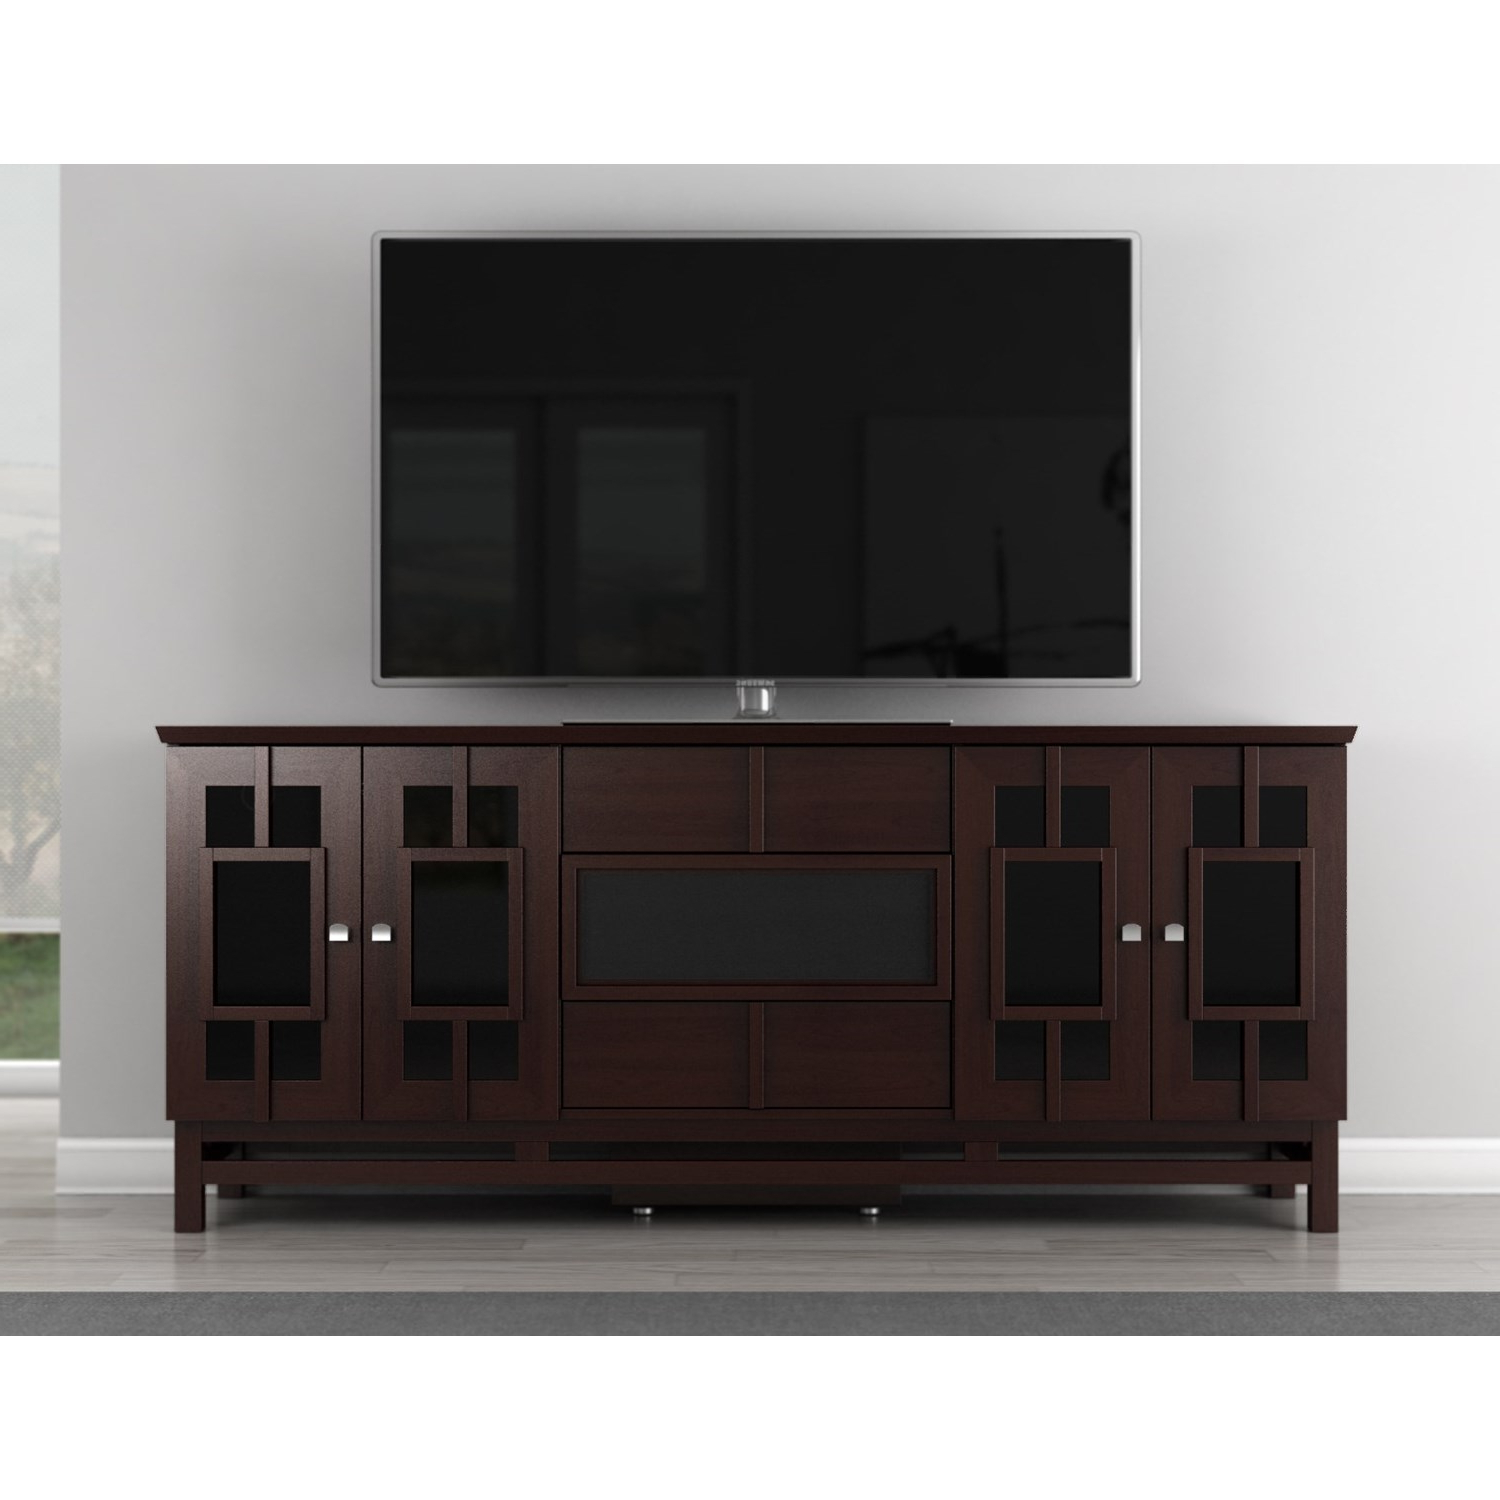 "Asian Tv Cabinets Within Favorite Furnitech Ft72Ac – 72"" Wide Contemporary Asian Tv Stand (View 6 of 20)"